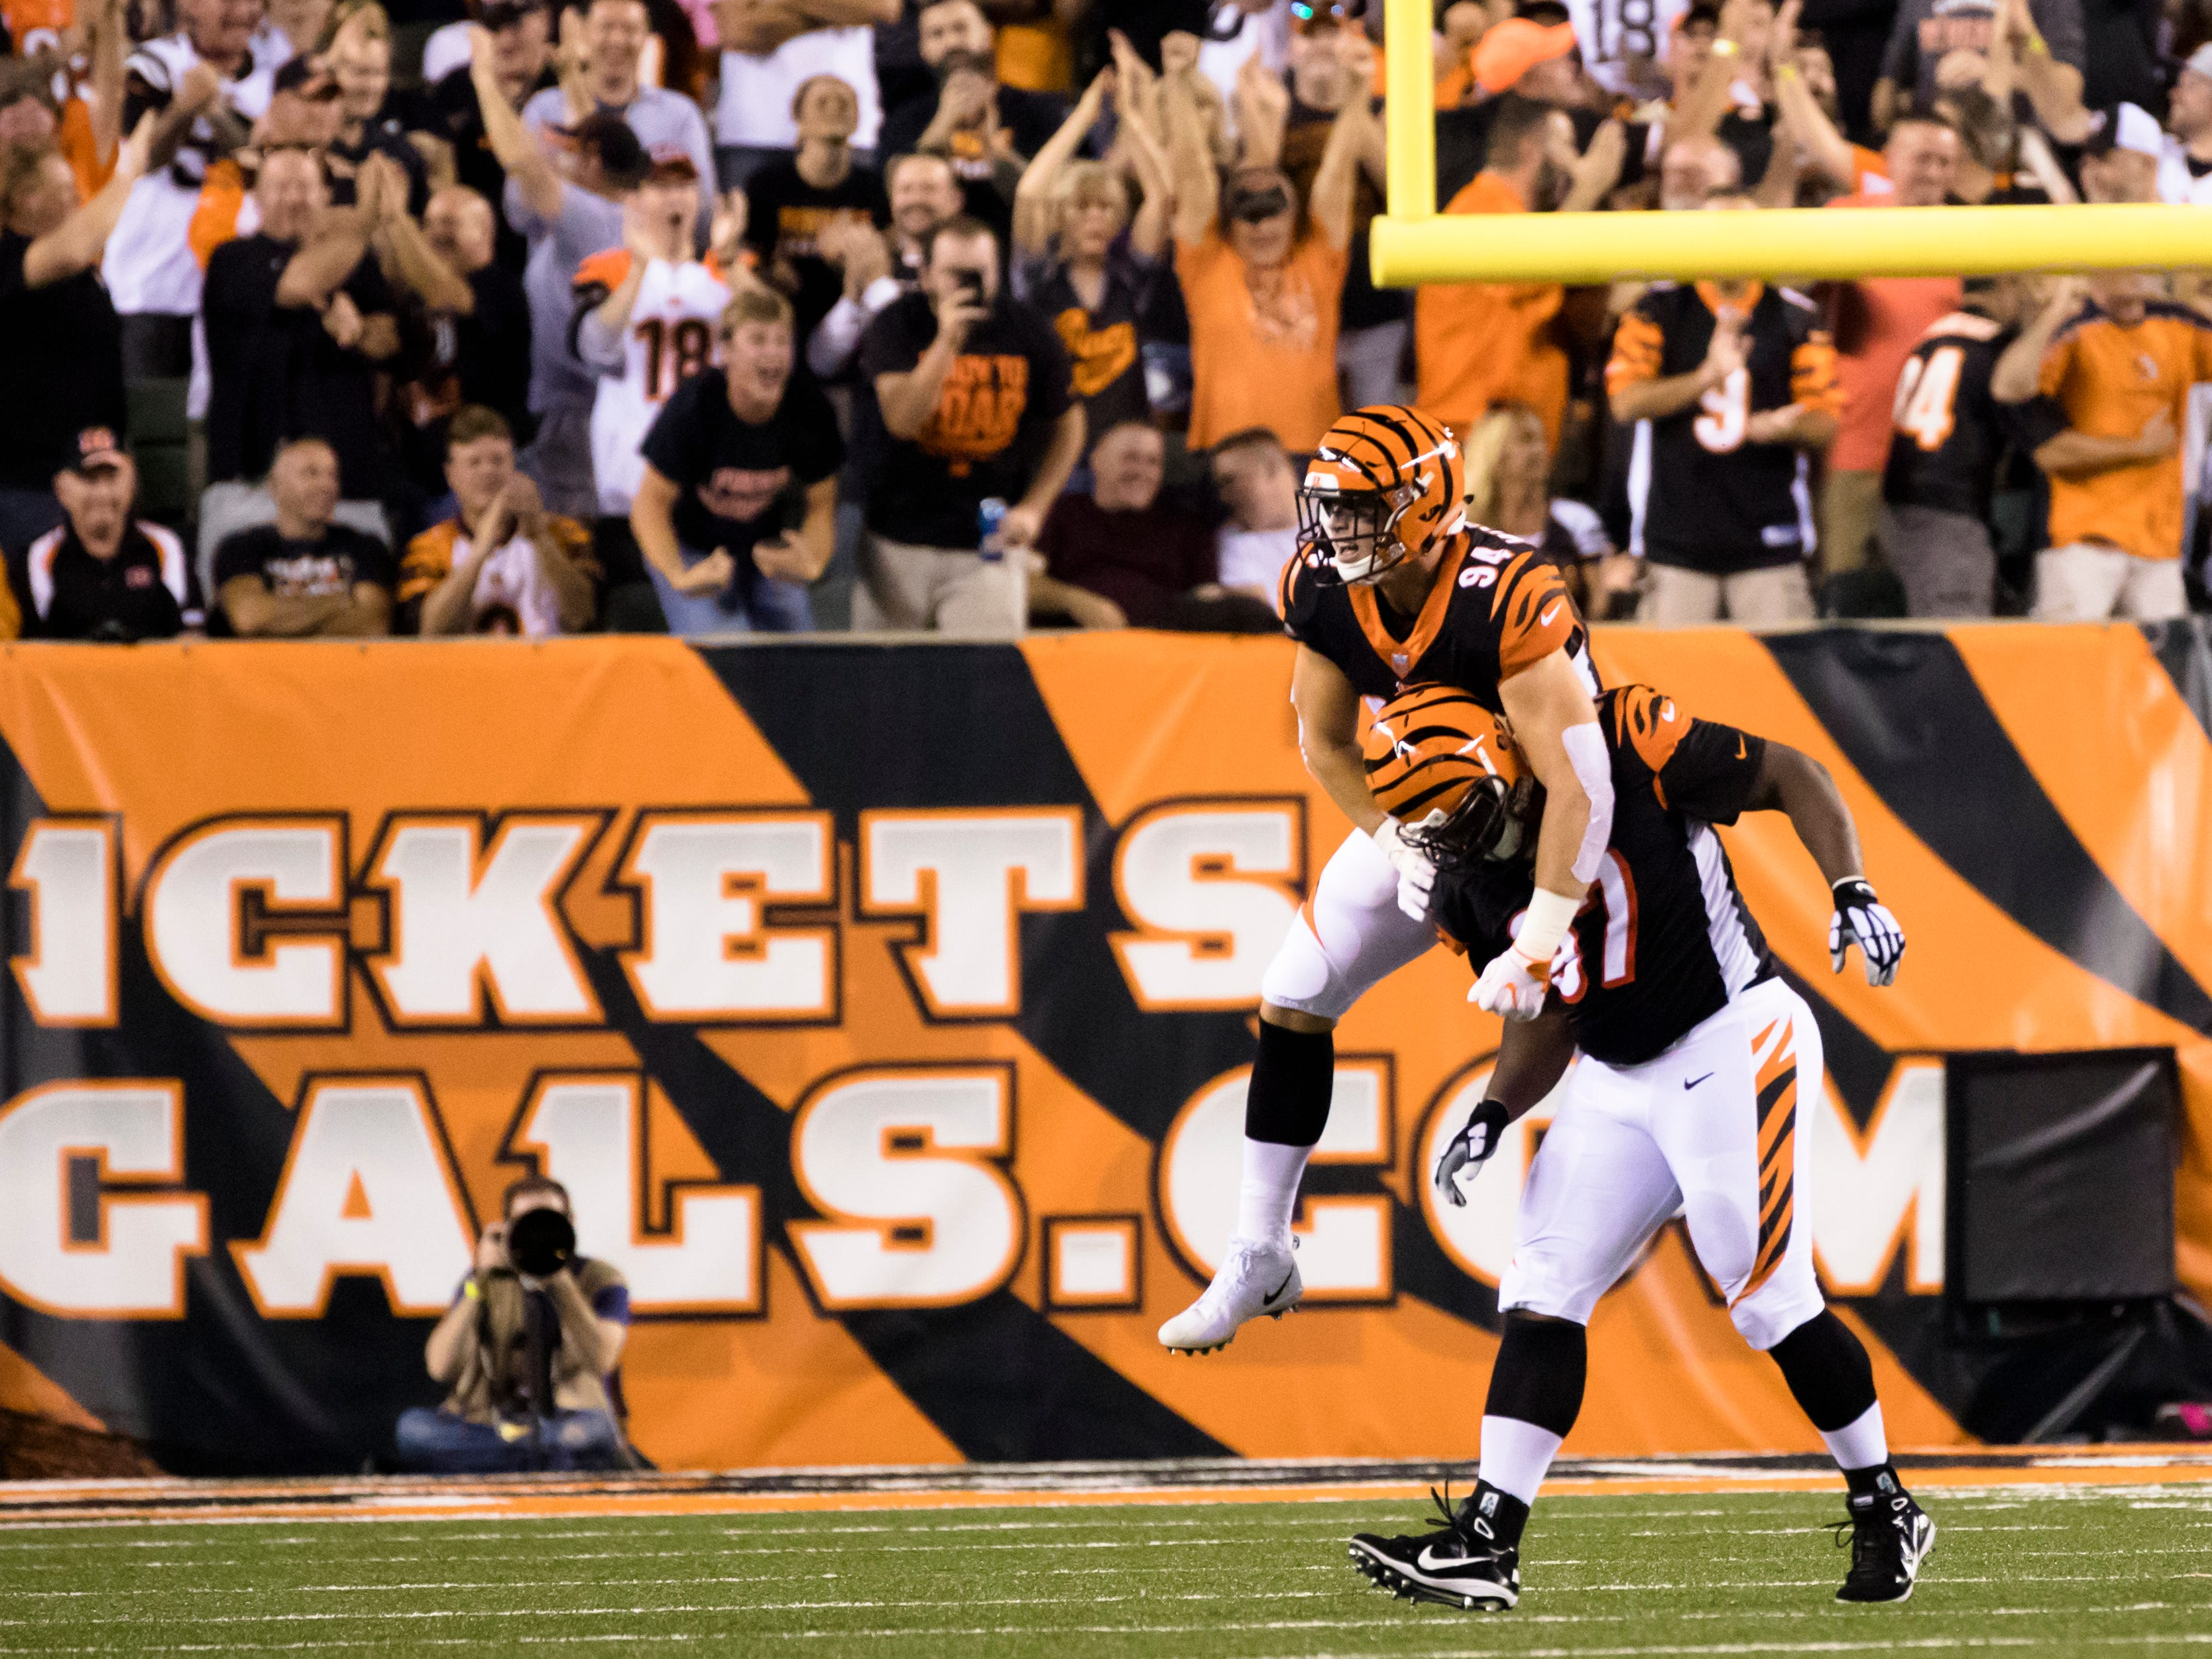 Cincinnati Bengals defensive end Sam Hubbard (94) celebrates with Cincinnati Bengals defensive tackle Geno Atkins (97) after a stop during the Week 2 NFL game between the Cincinnati Bengals and the Baltimore Ravens, Thursday, Sept. 13, 2018, at Paul Brown Stadium in Cincinnati.